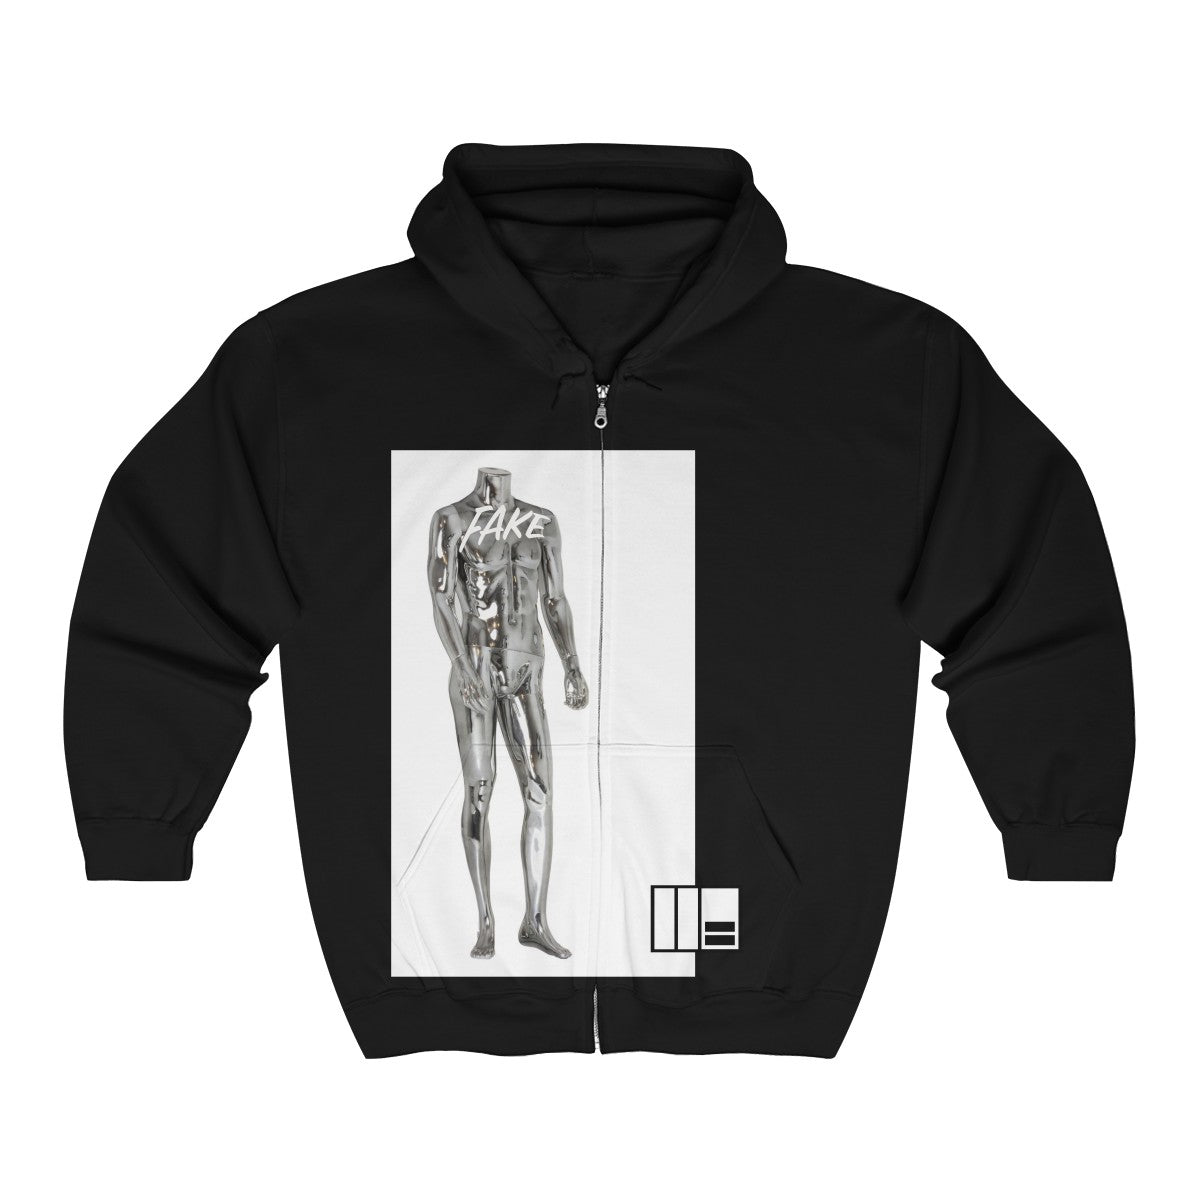 I'm Too Sexy For This Zipper Hoodie